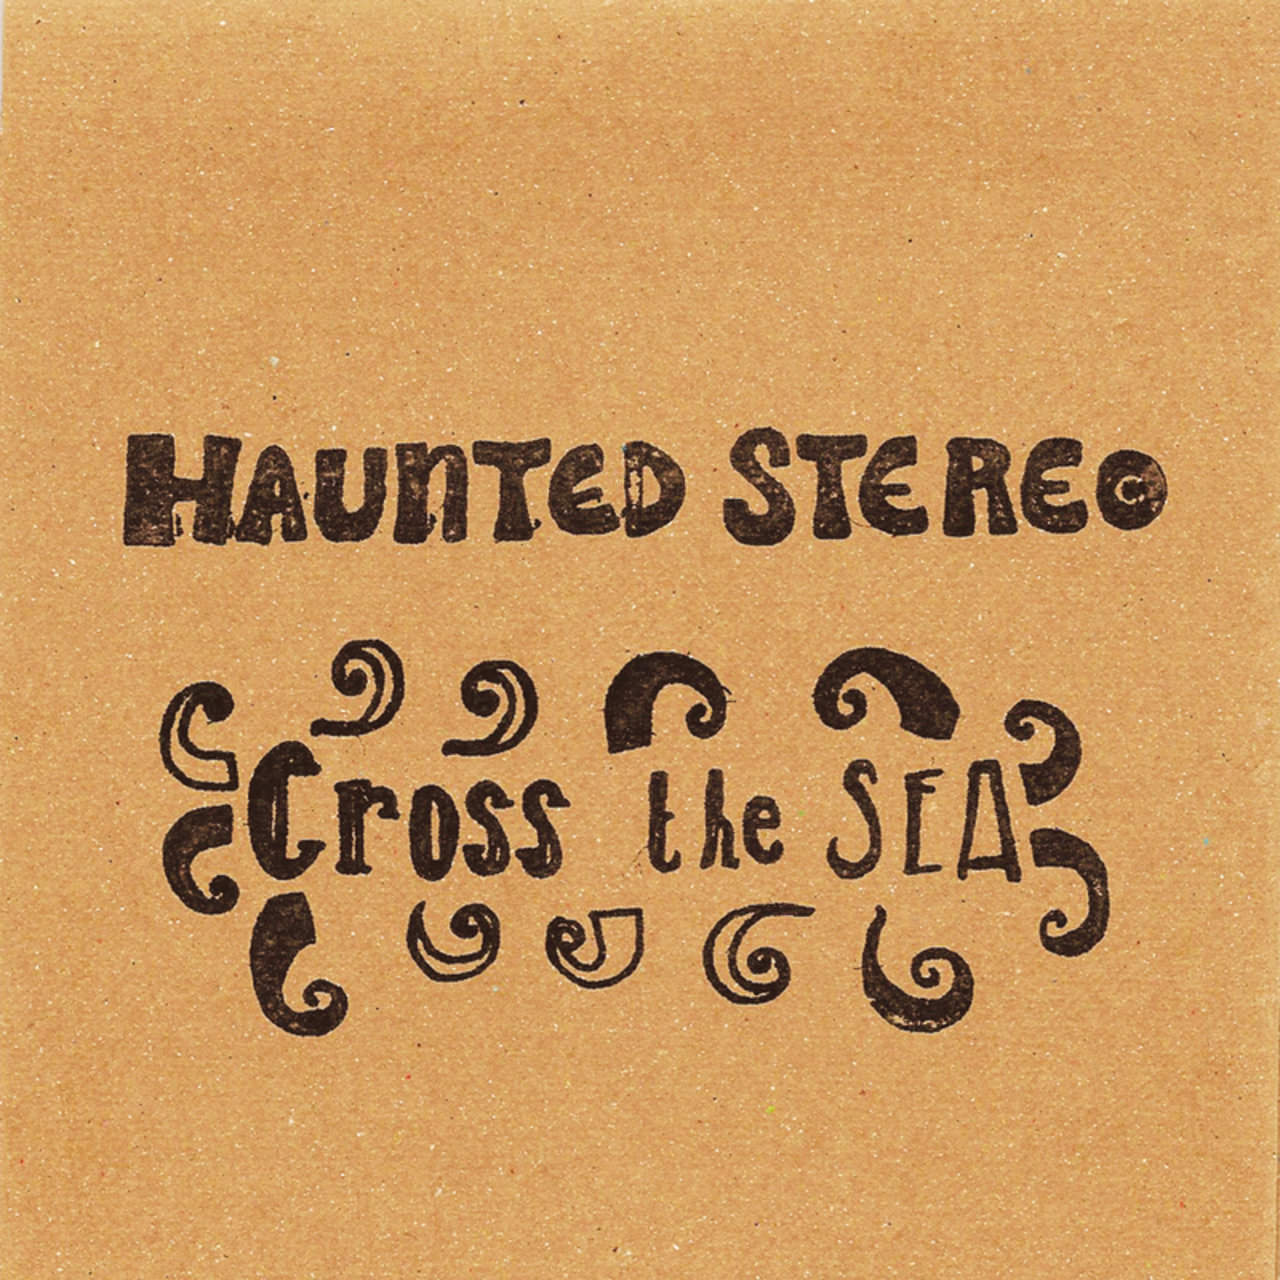 Haunted Stereo, Cross the Sea